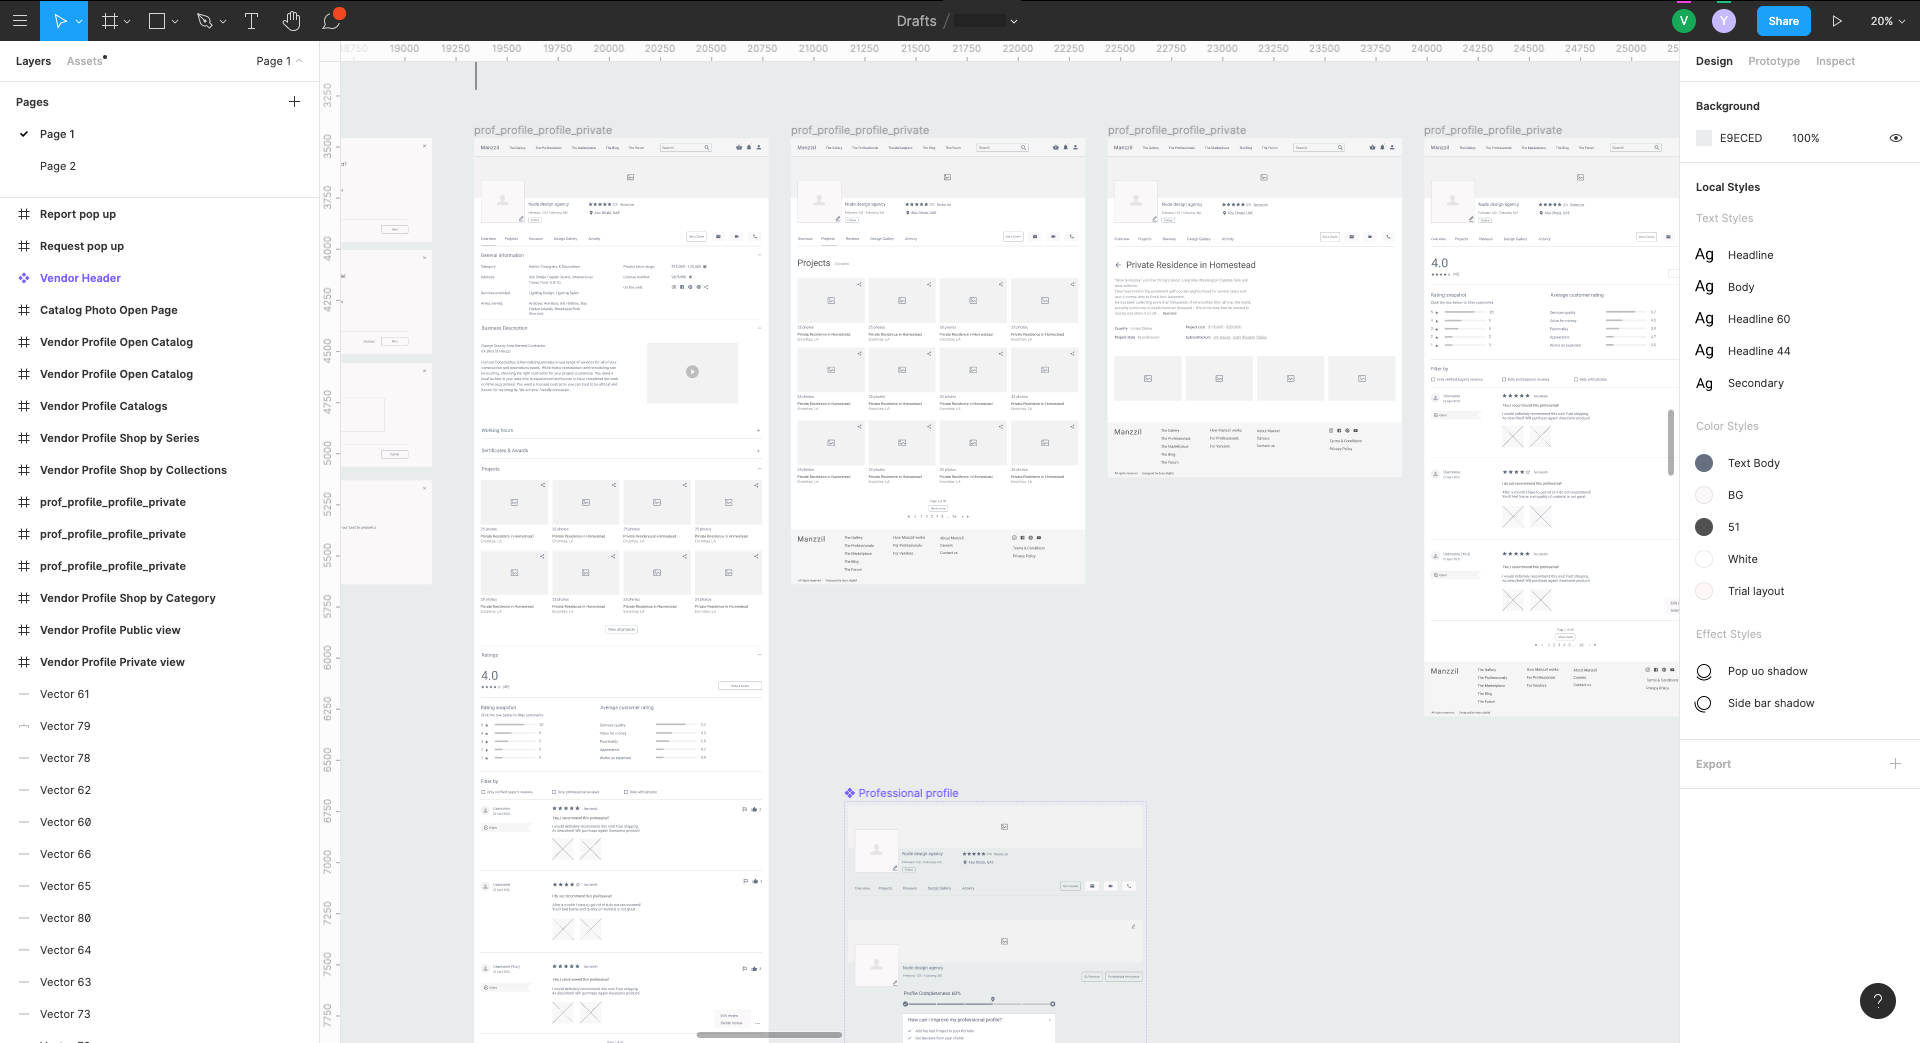 figma-interface.png